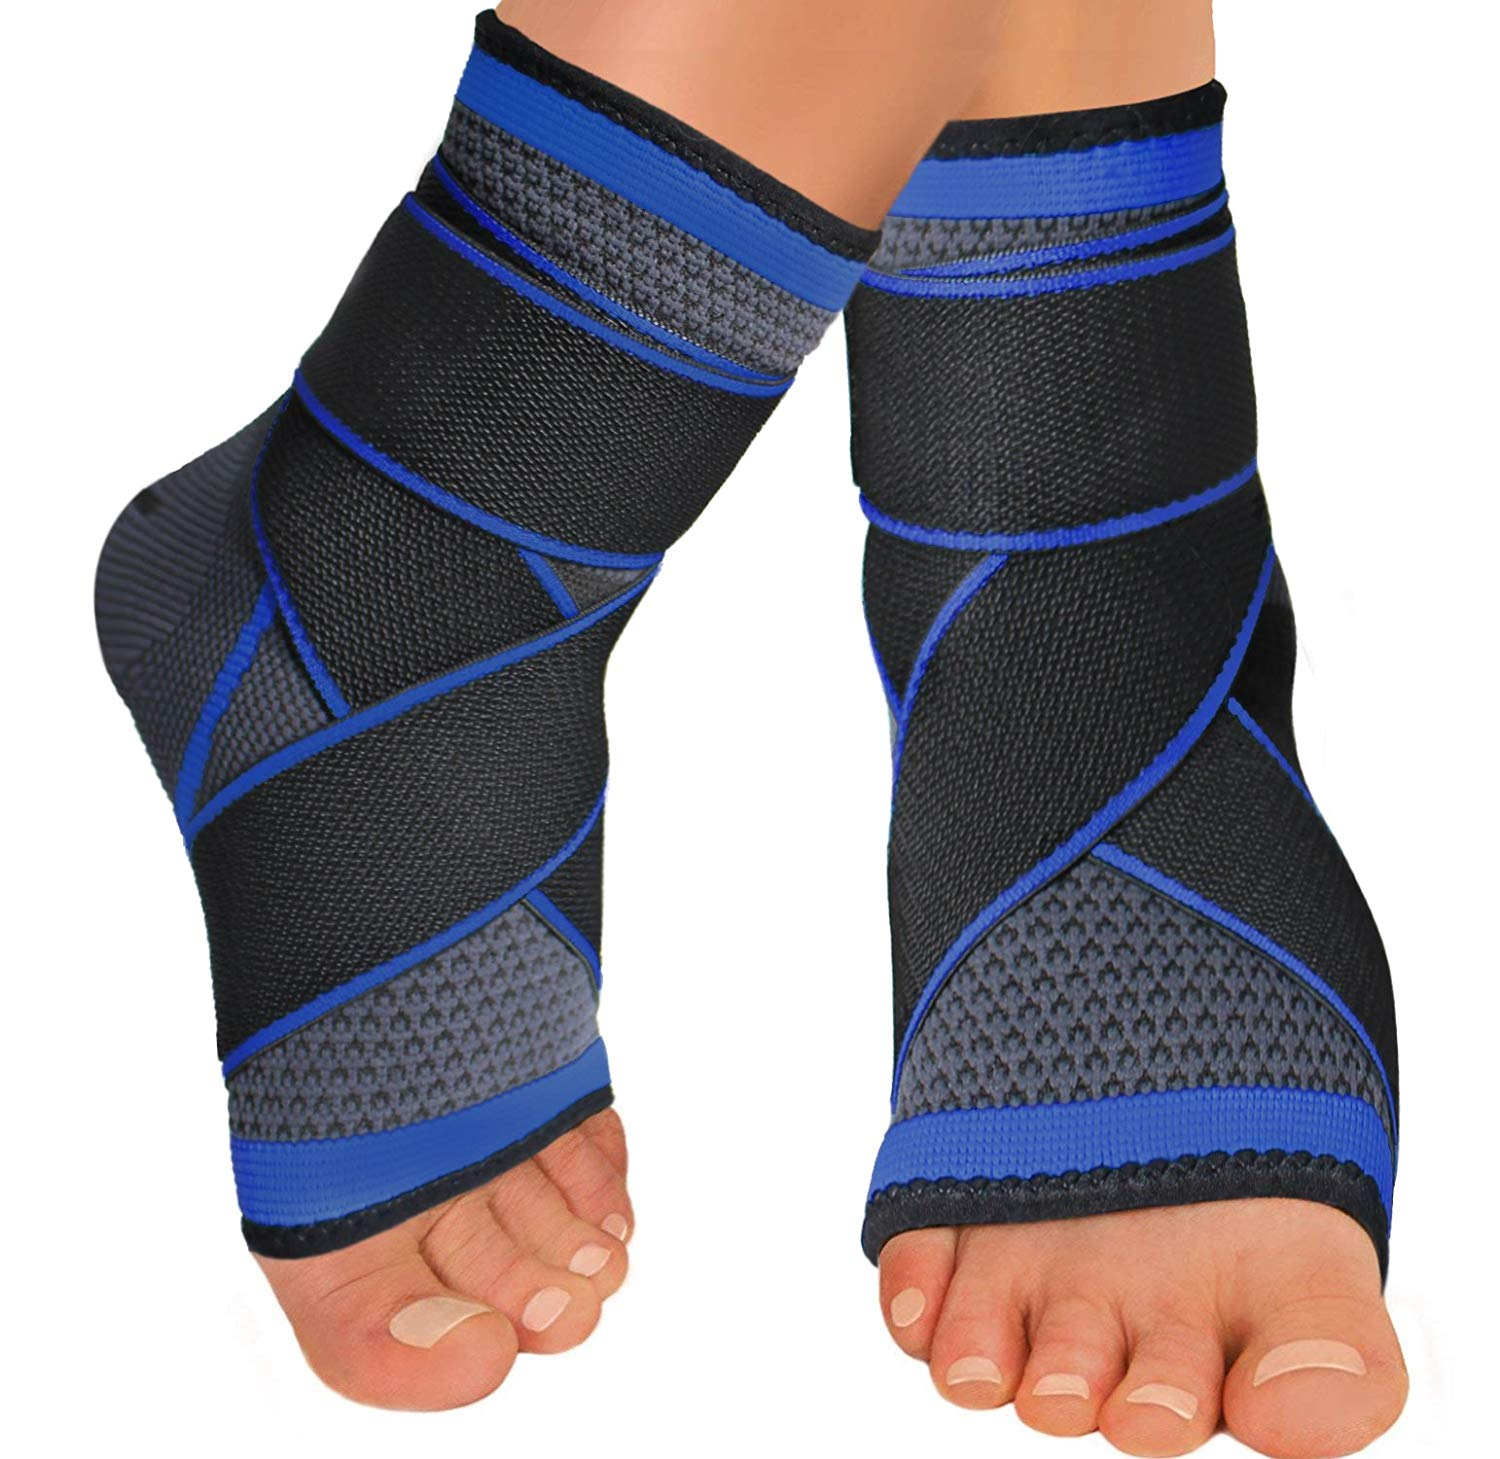 e30a3cc0c8 Get Quotations · Sport Foot Socks, Ankle Brace Compression Support Sleeve  with Wrap, Breathable Arch Support for